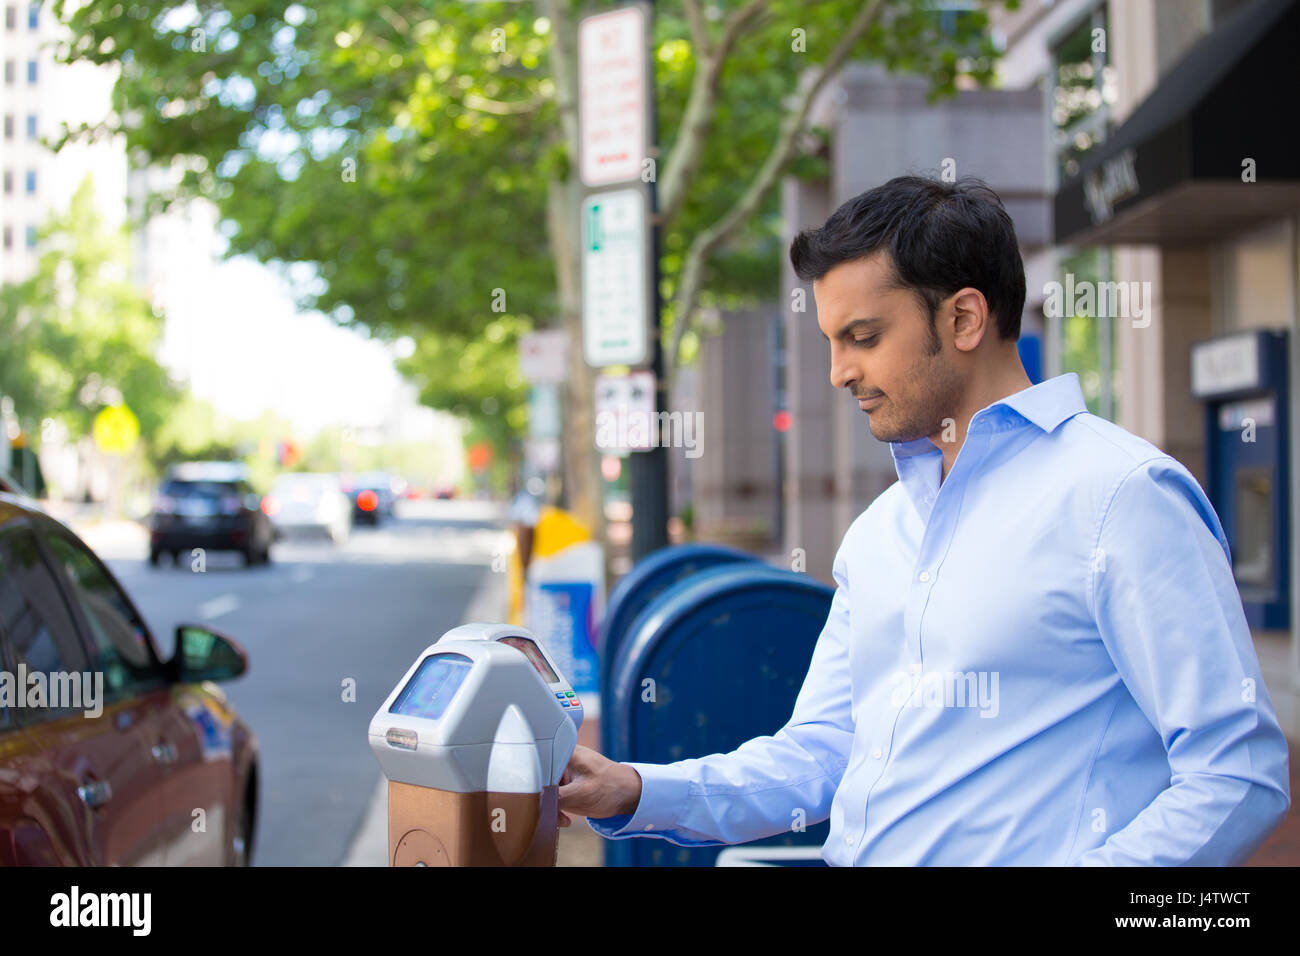 Closeup portrait, young man in blue button down shirt putting coins in parking meter outside to prevent fines, isolated - Stock Image